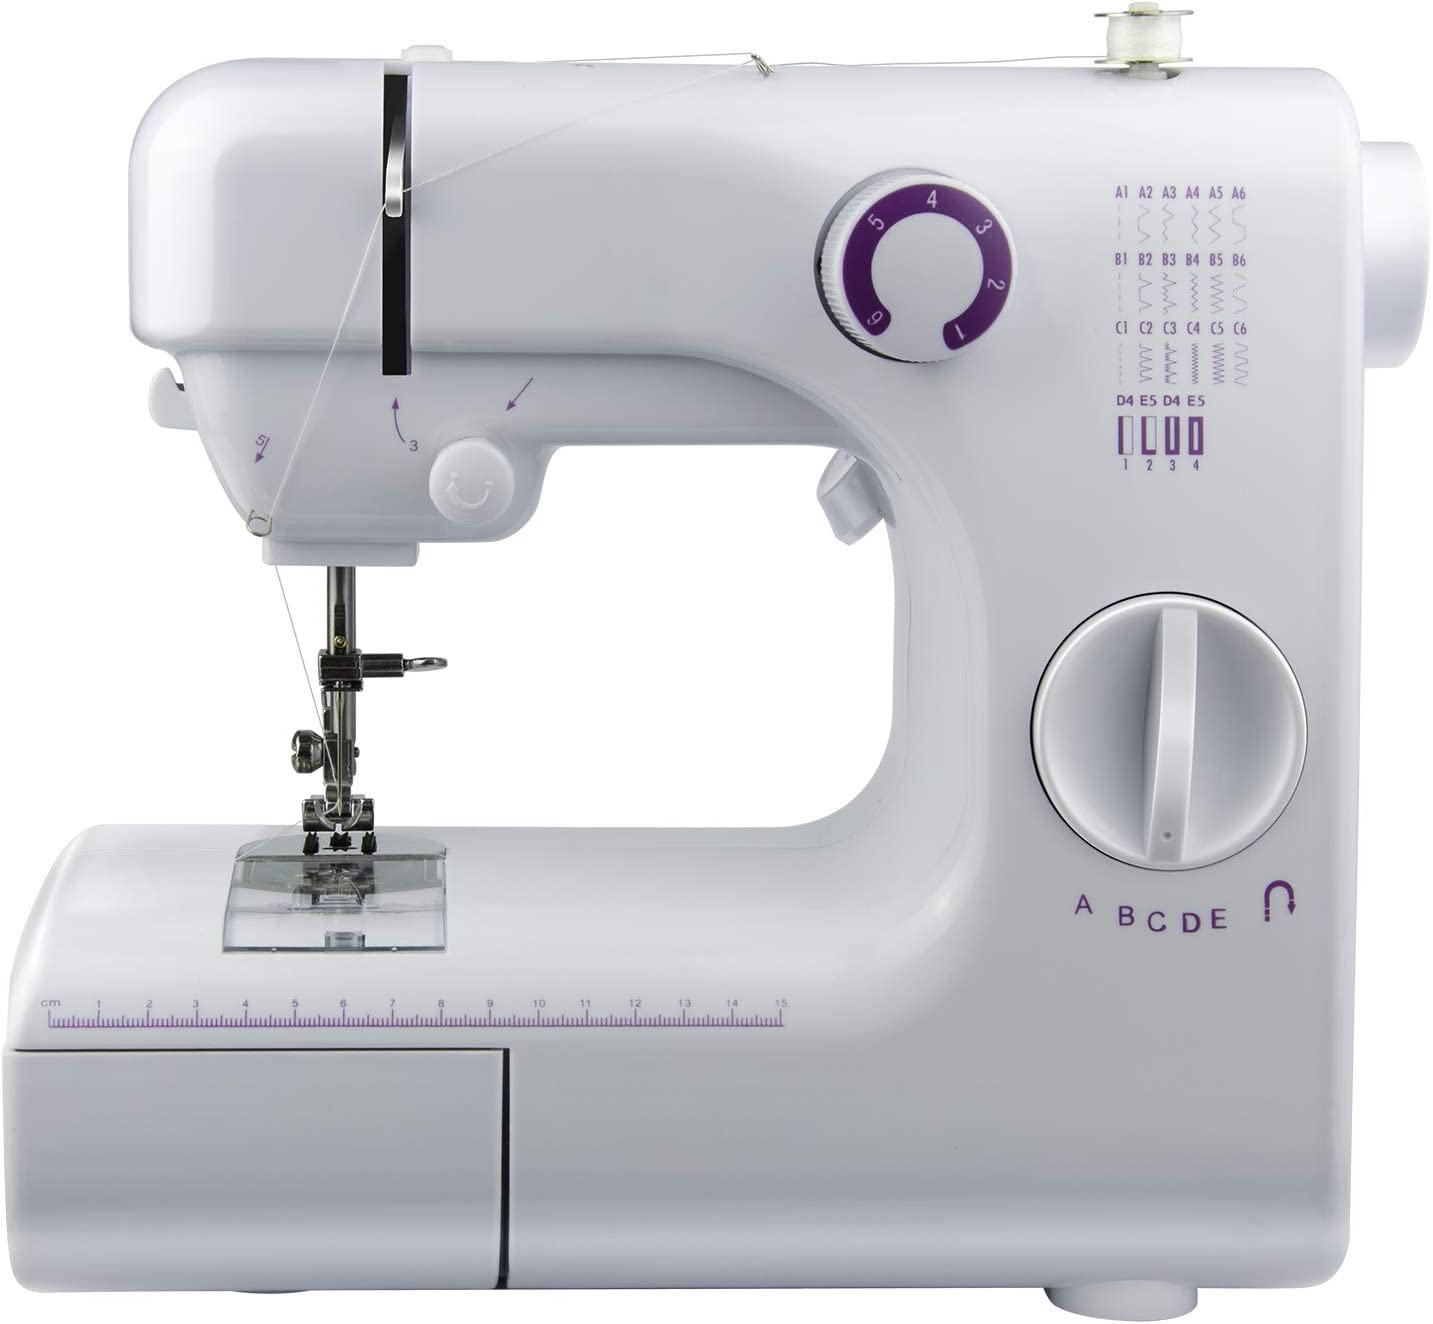 Easy Operation Fabric Sewing ALOOK Sewing Machine Household Portable Electric Portable Mini with 19 Different Stitches Home Travel Clothing Durable DIY for Fabric